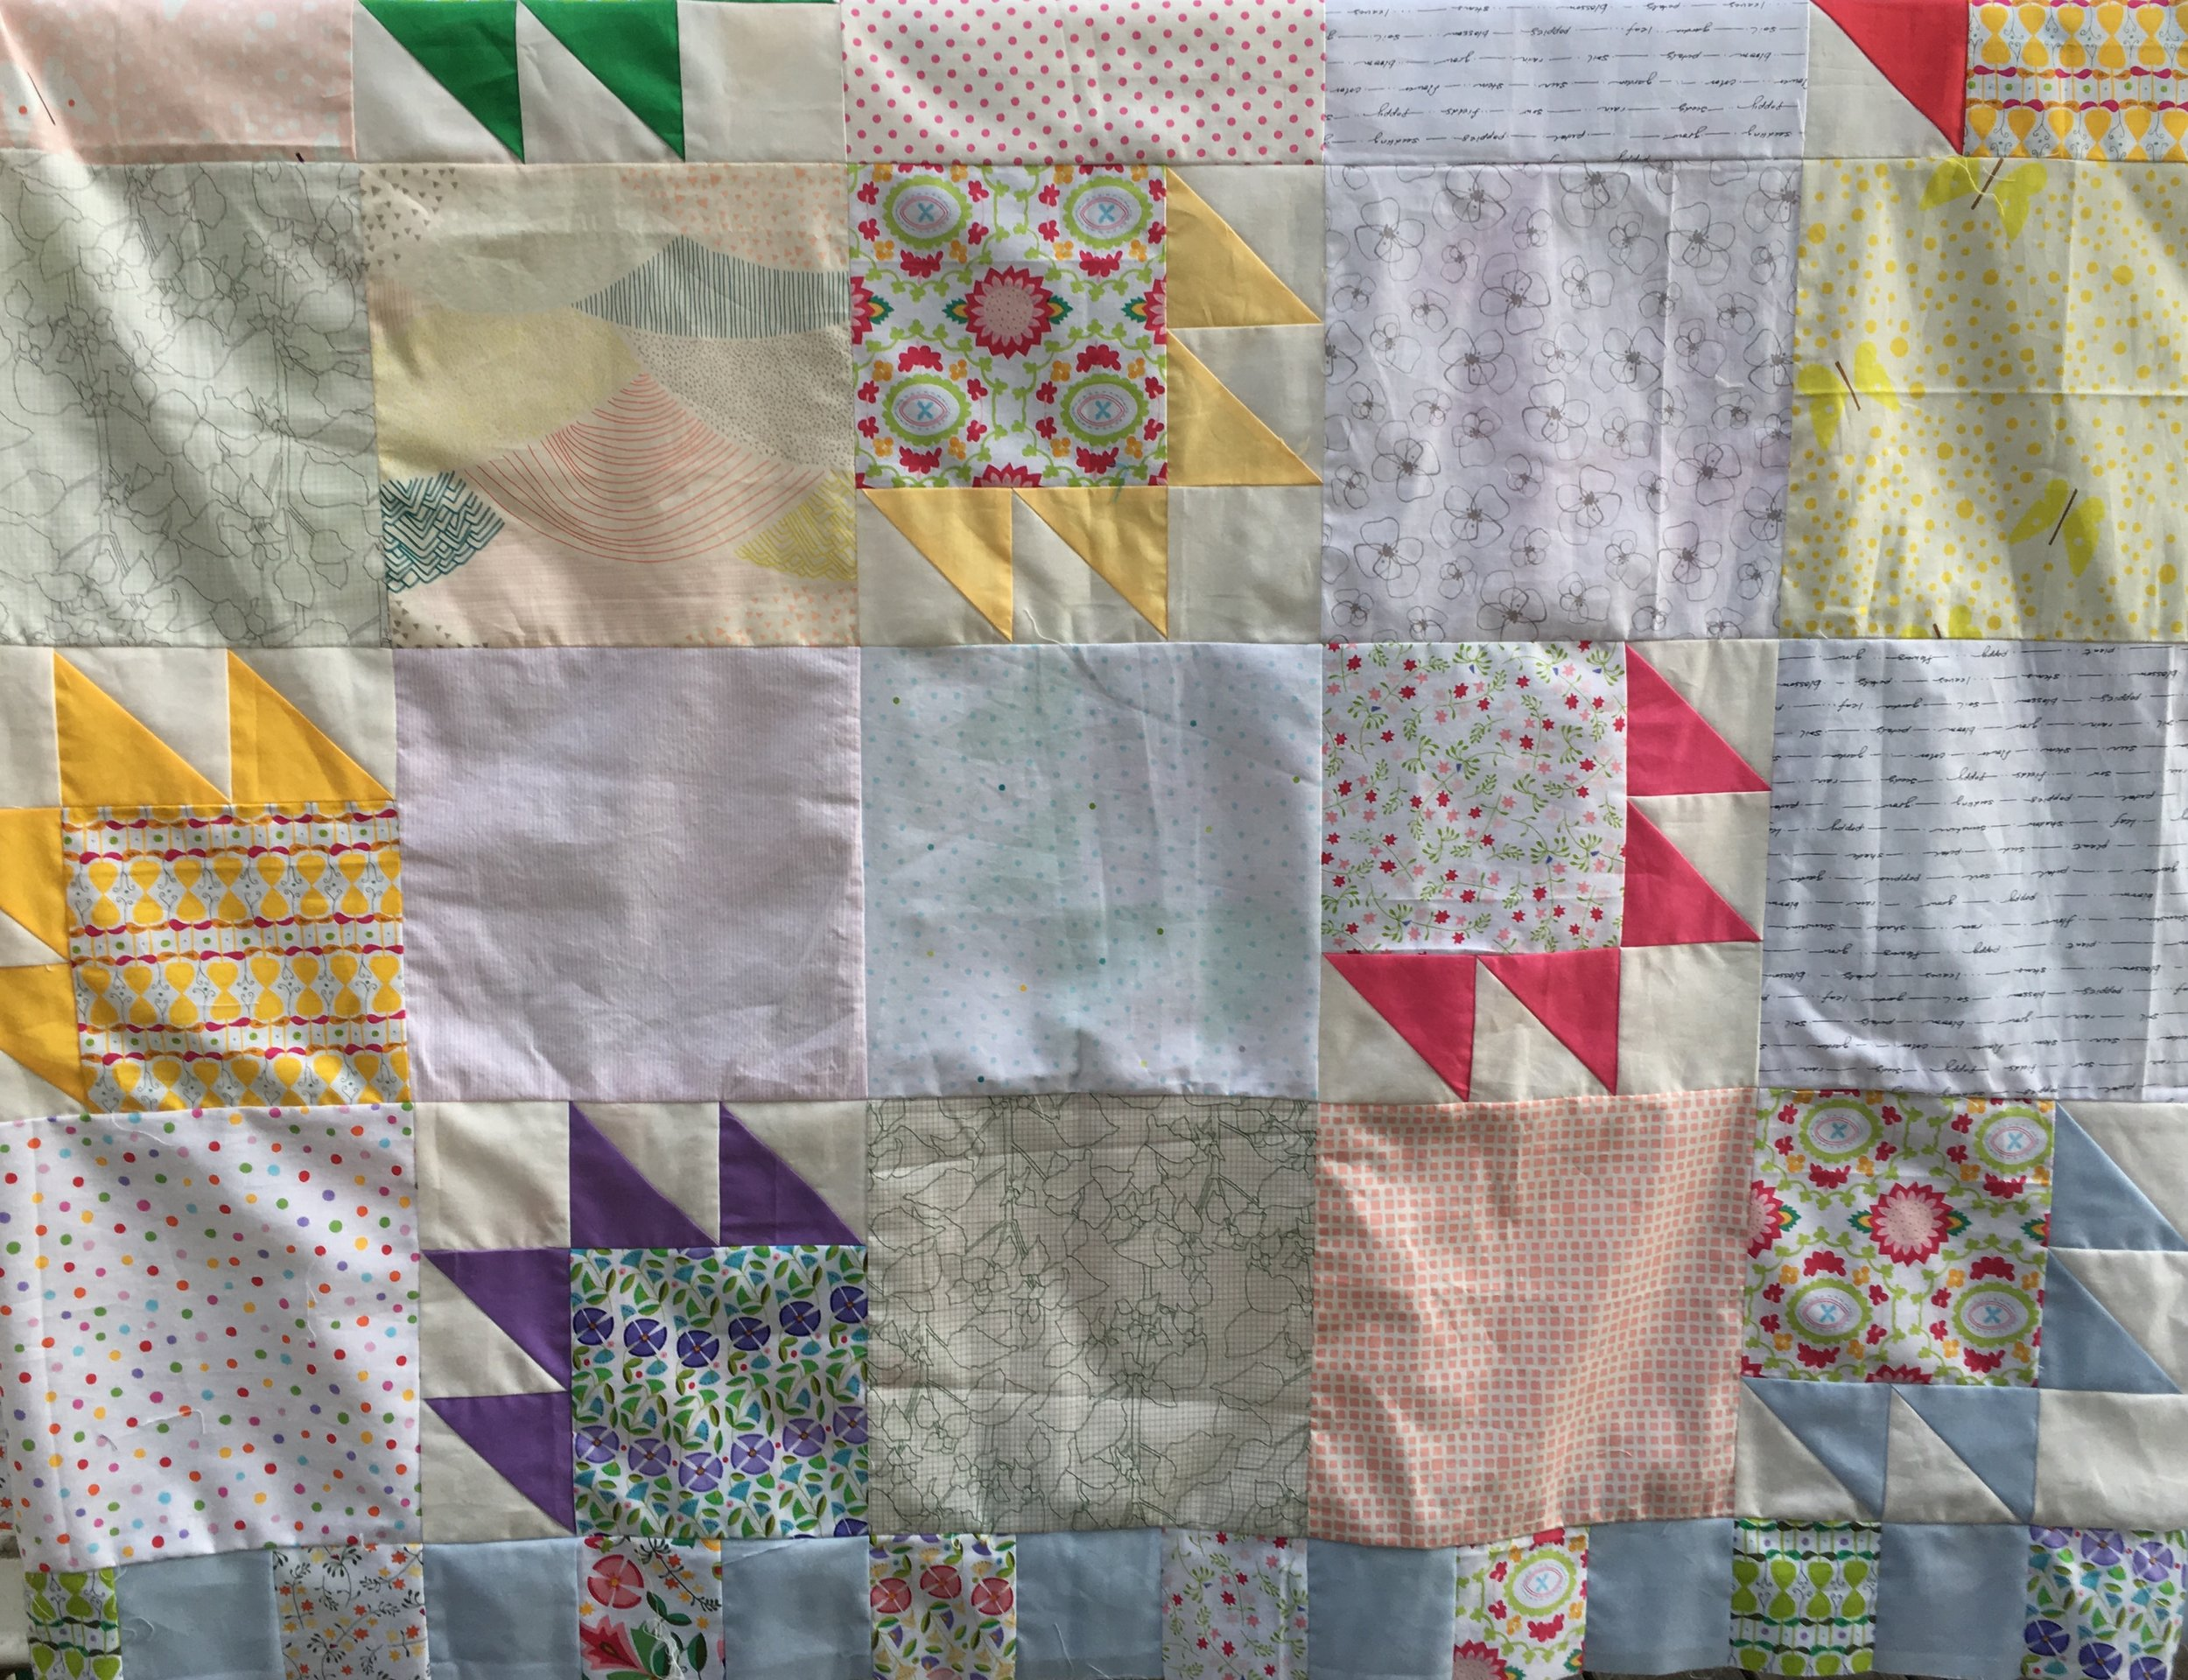 Quilt top waiting to be sandwiched and quilted